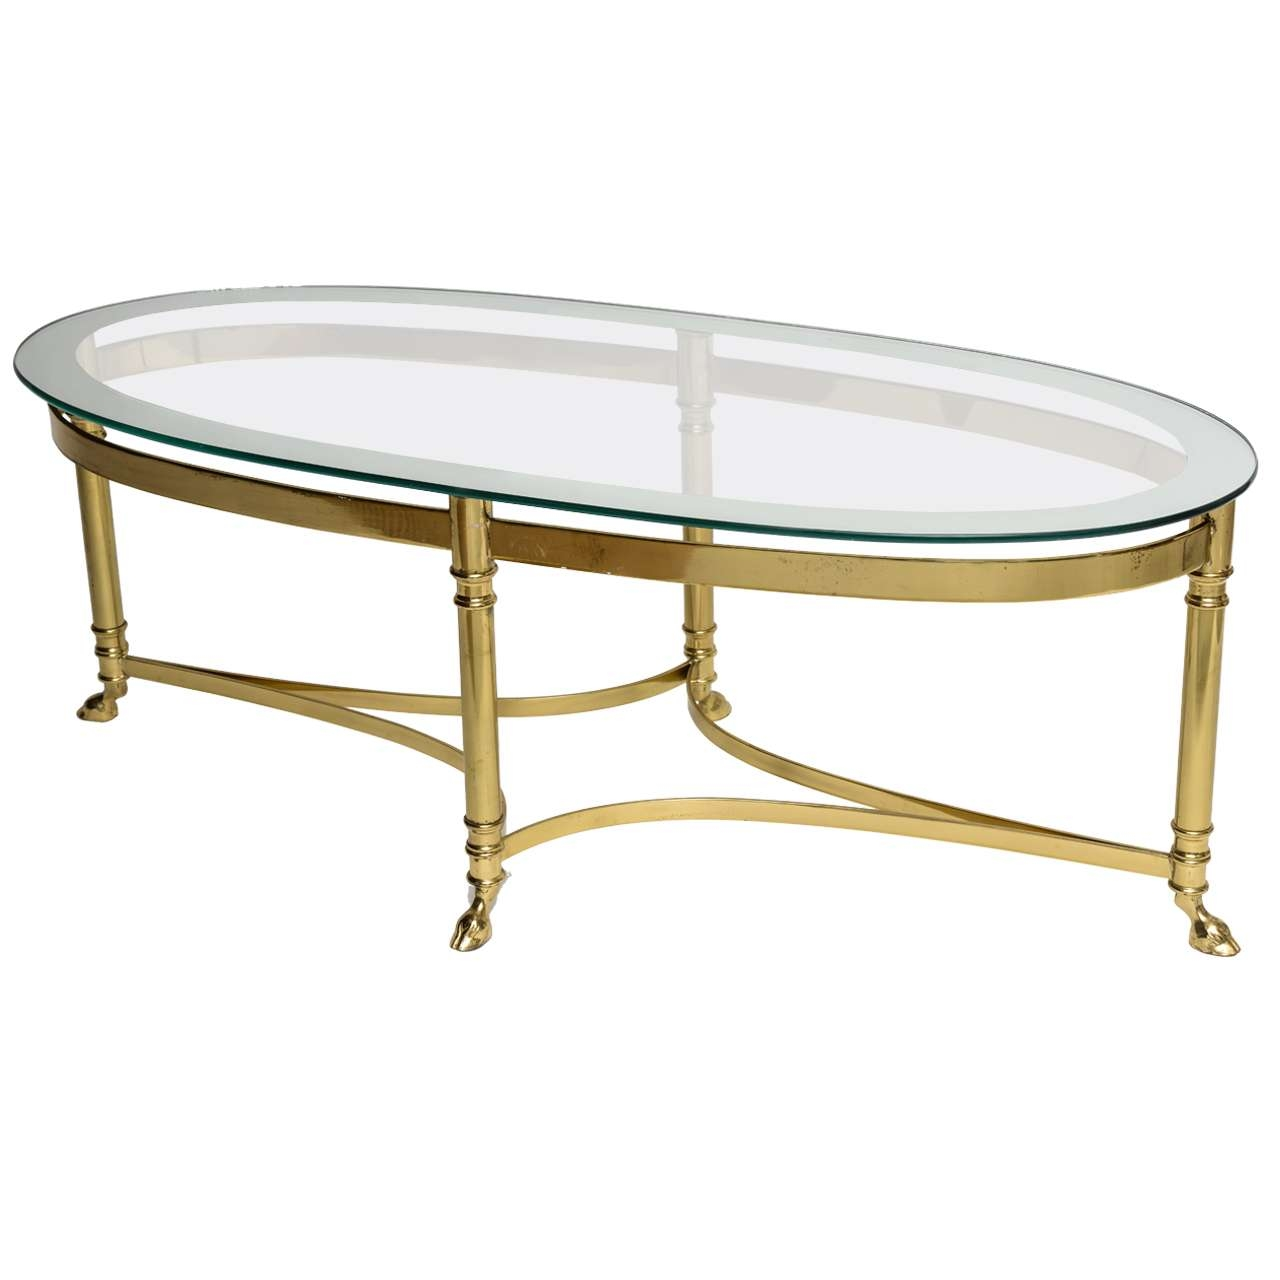 2017 Retro Glass Coffee Tables With Regard To Coffee Tables Ideas: Stunning Glass Oval Coffee Table Living Room (View 9 of 20)